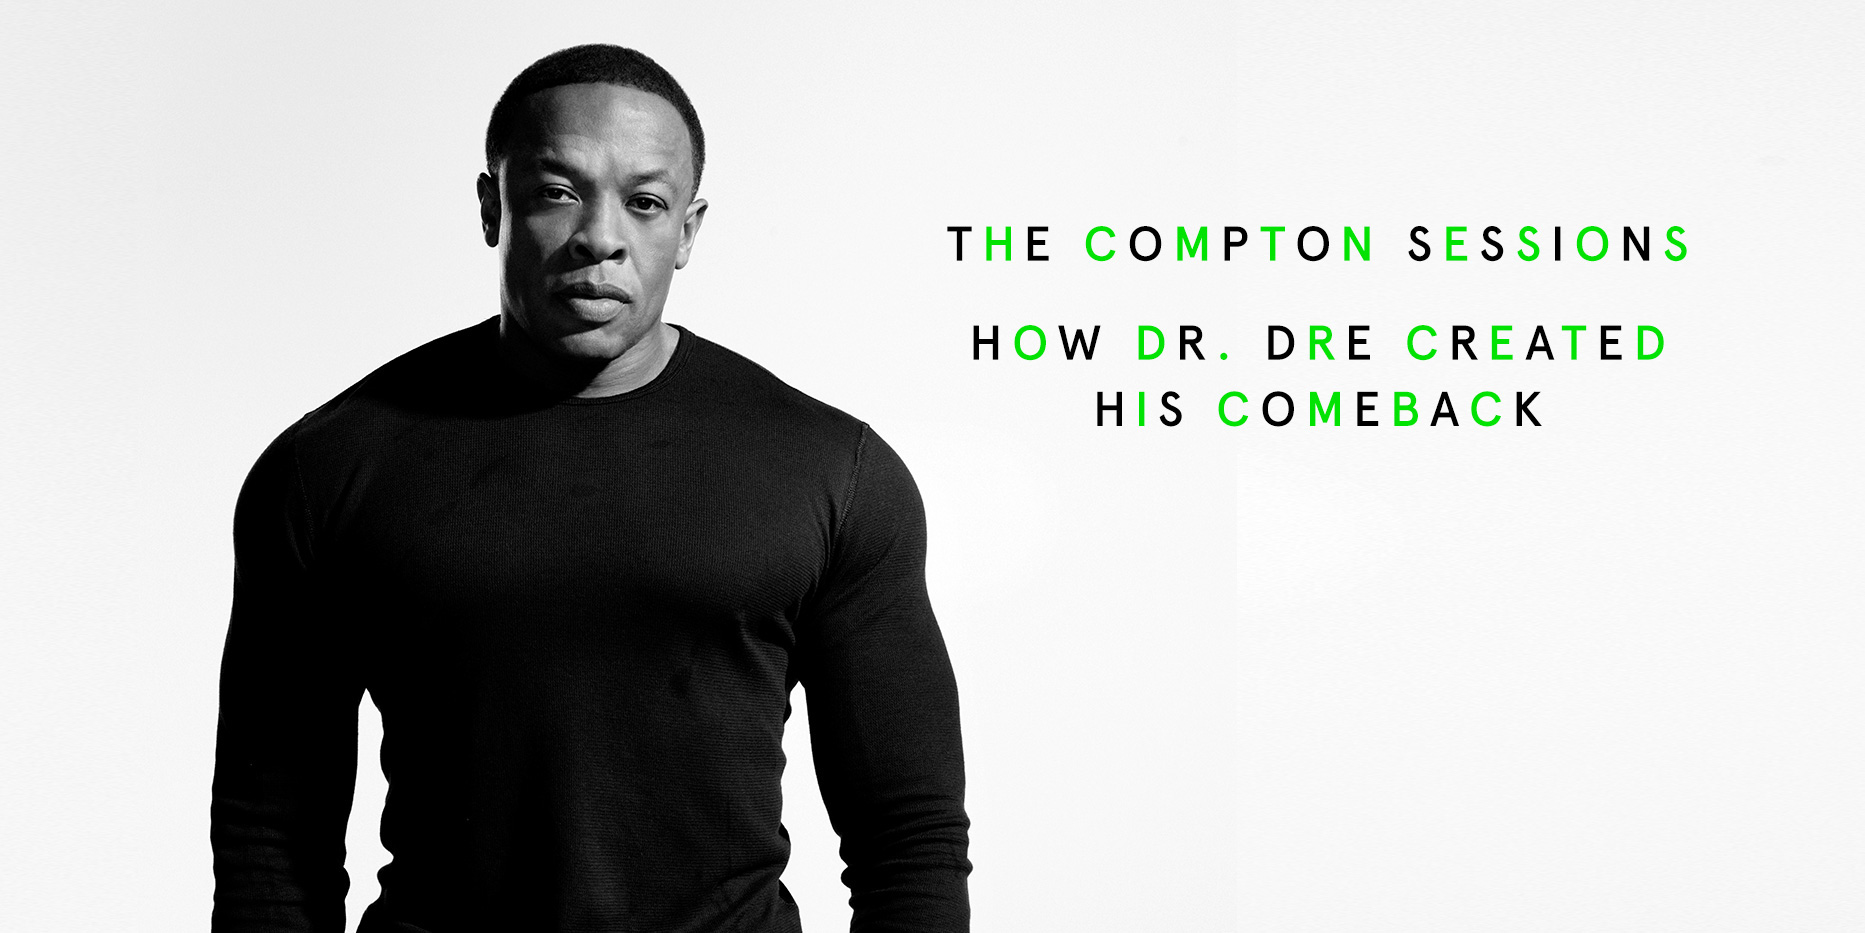 Dr Dre Wallpaper Hd The Compton Sessions How Dr Dre Created His Comeback